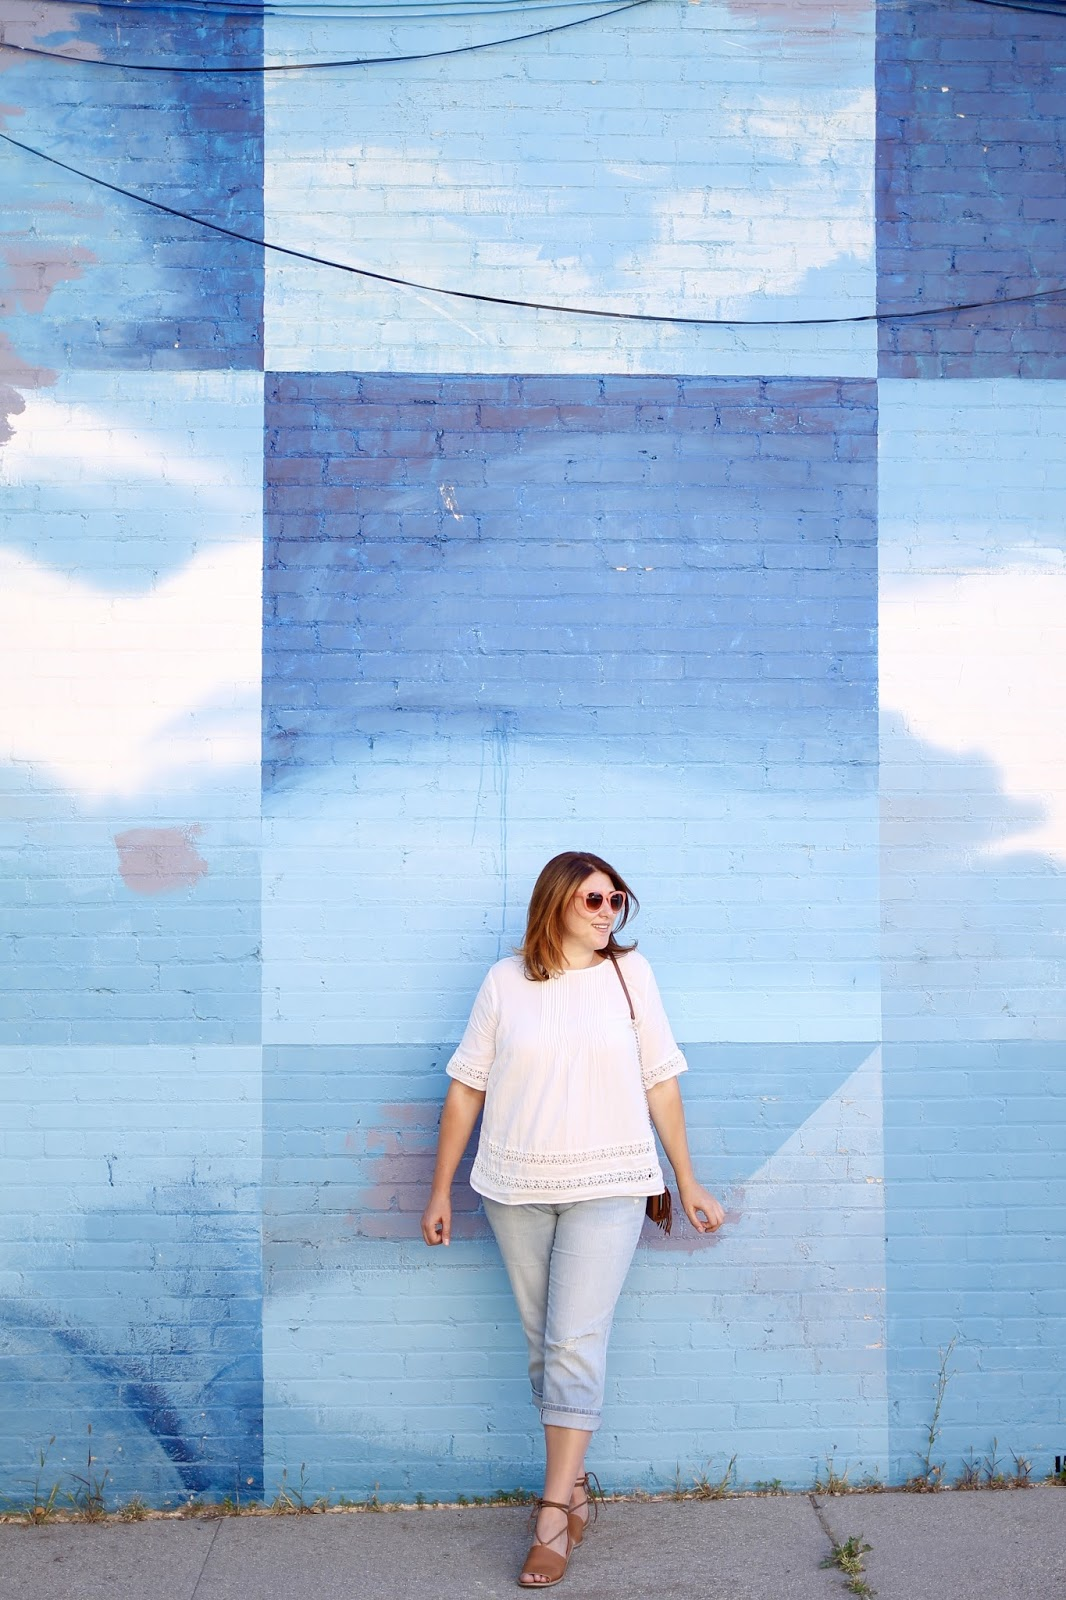 maternity style, pregnancy outfit, swing top, Salt Lake city Mural